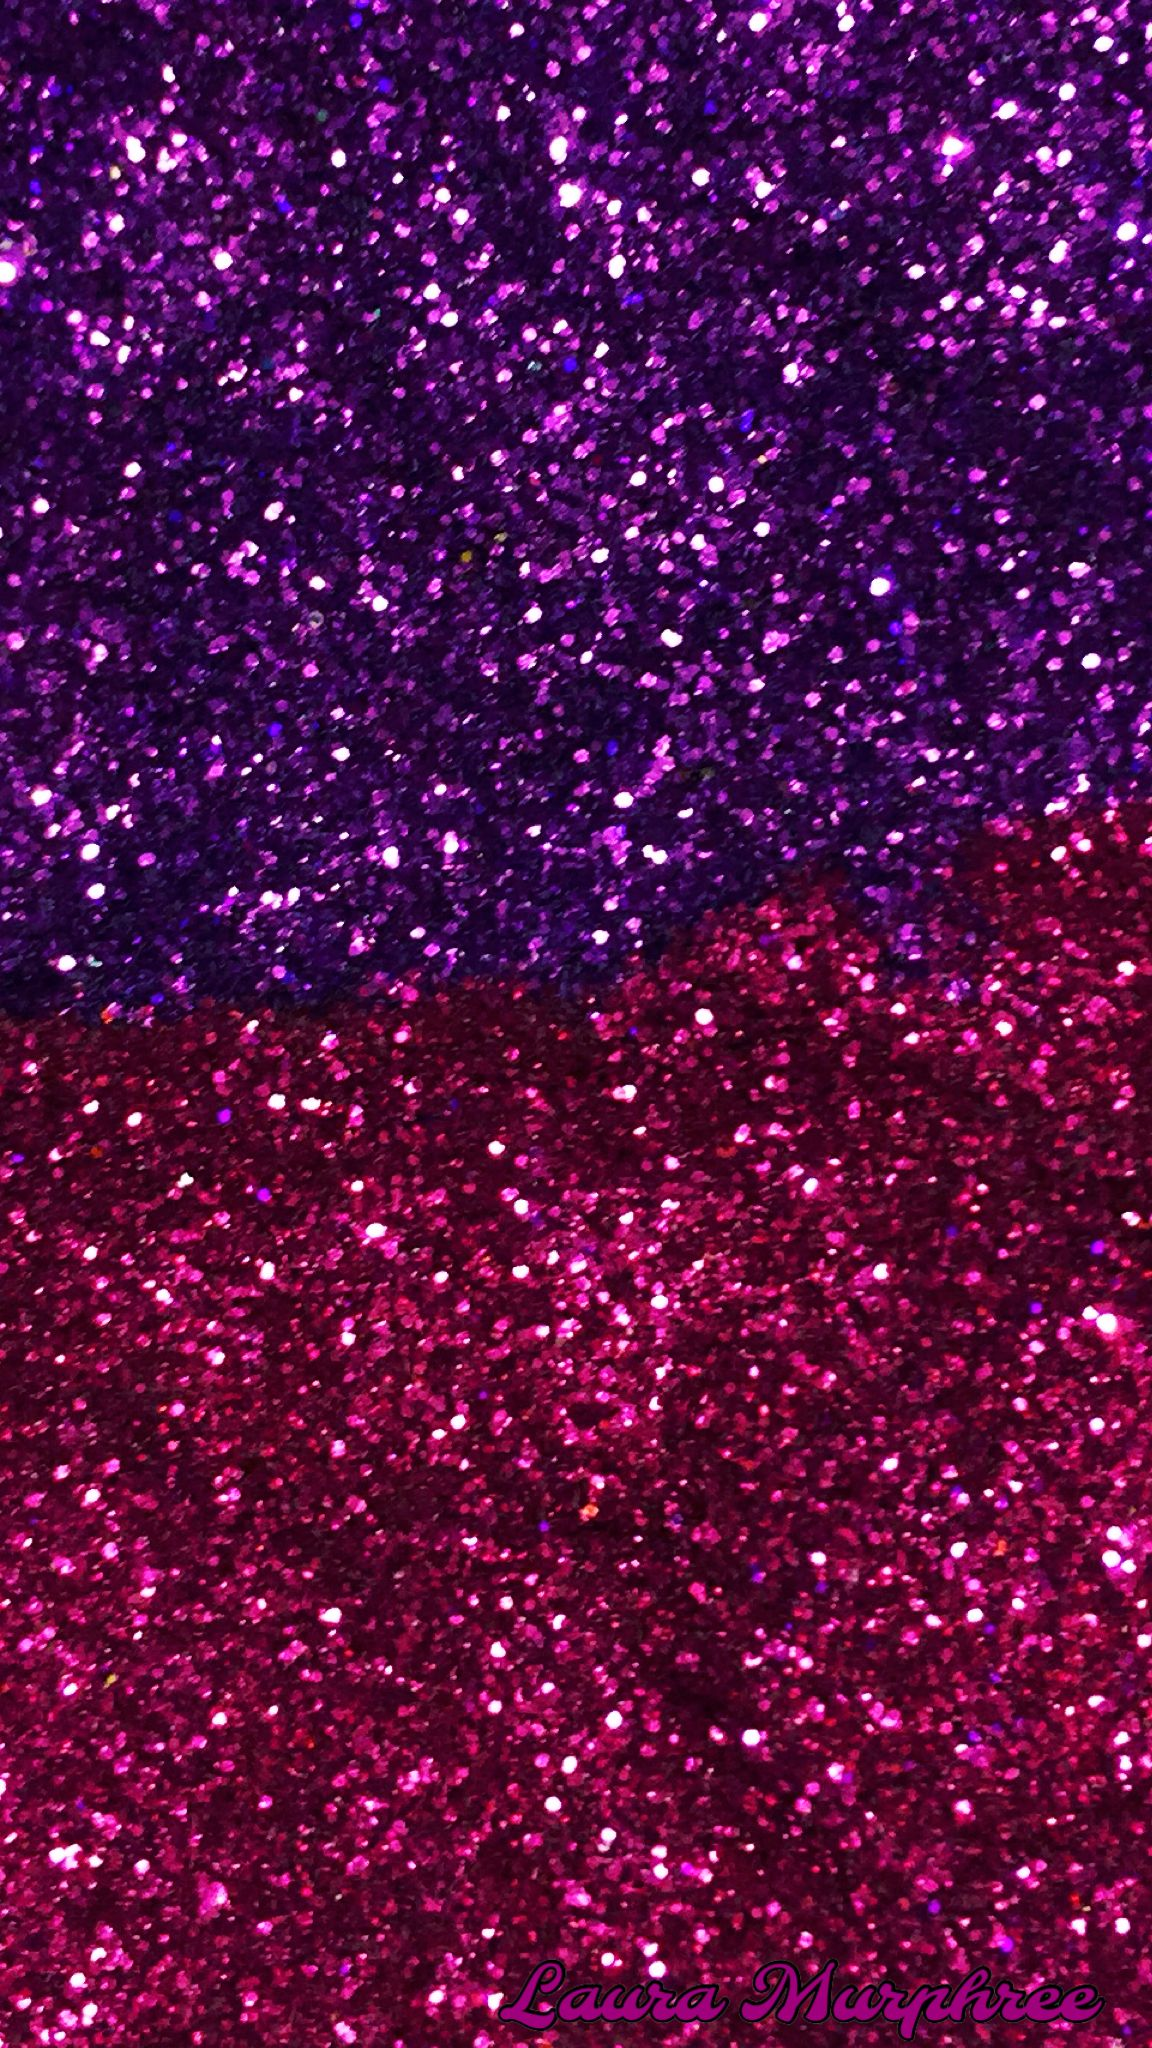 Glitter phone wallpaper my glitter phone wallpaper pinterest glitter phone wallpaper voltagebd Image collections